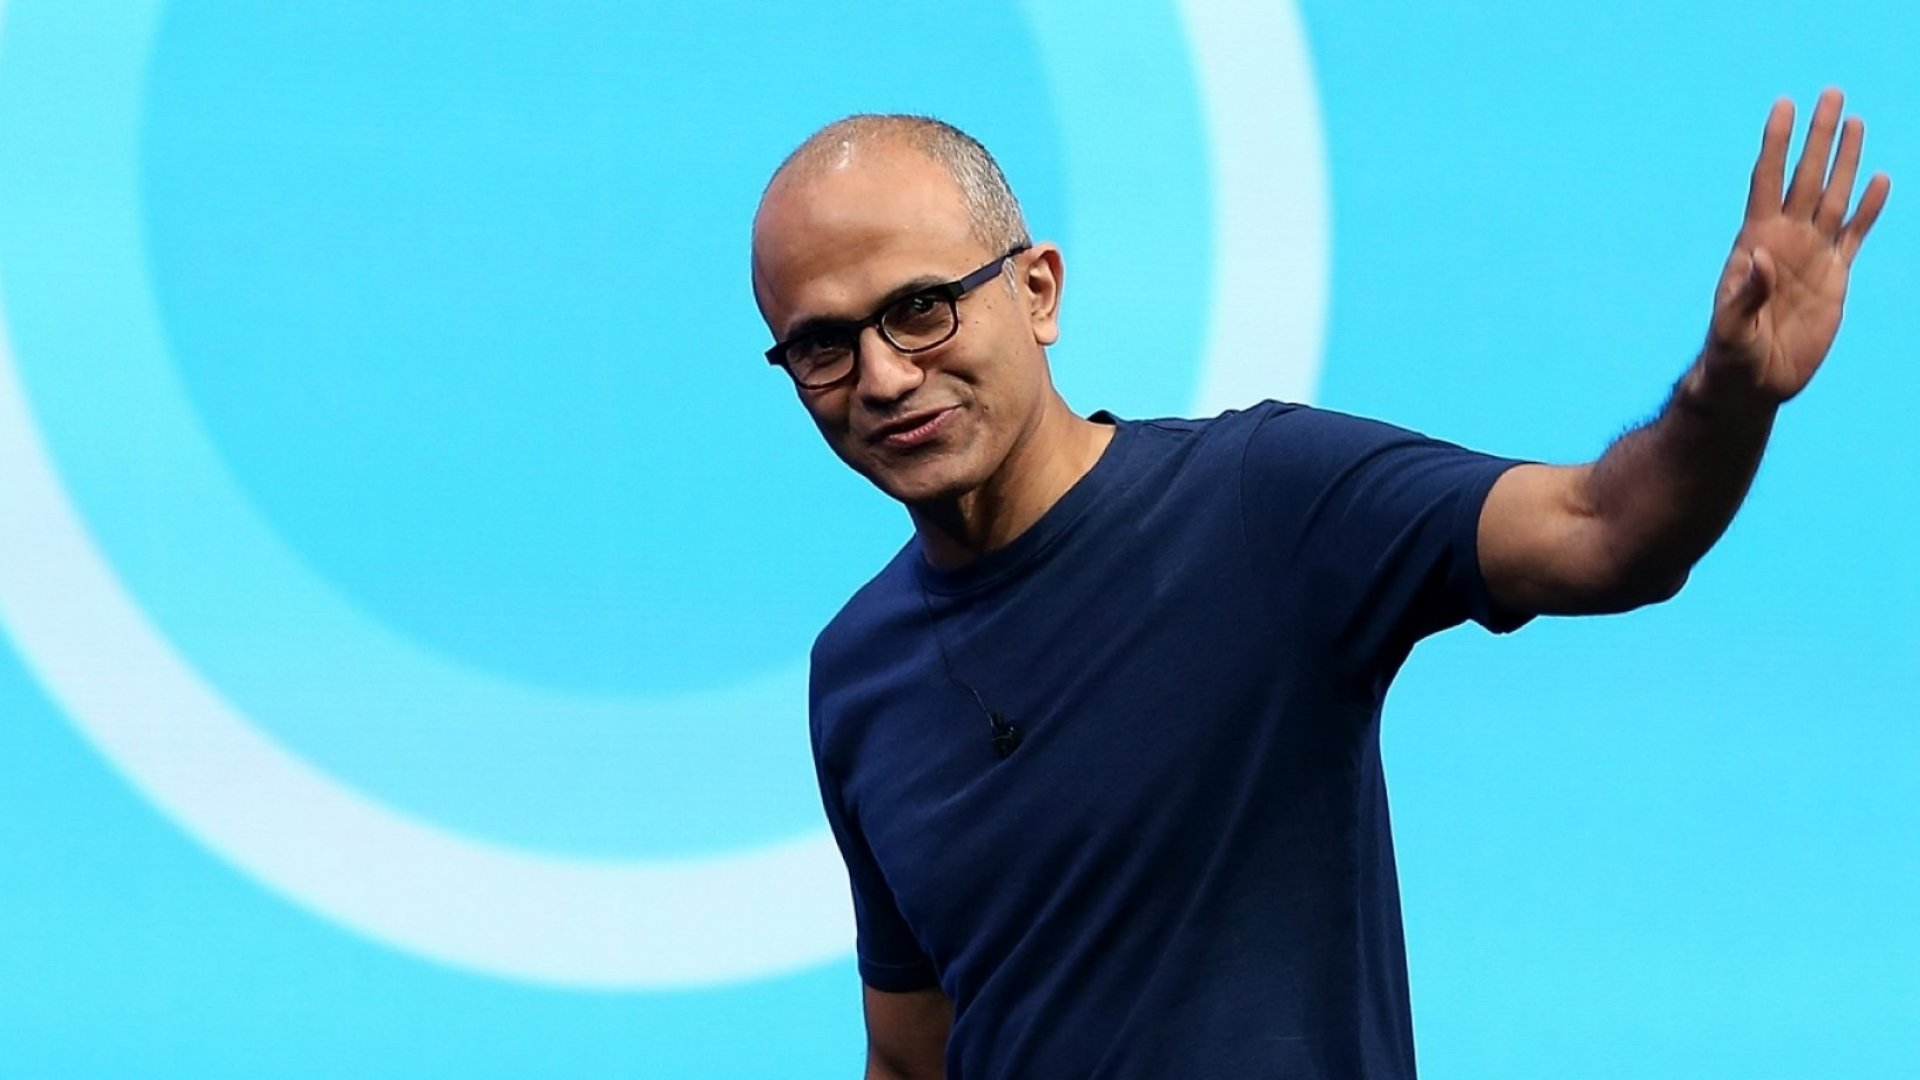 19 Books Bill Gates and the CEOs of Microsoft, Google, PayPal, and Wal-Mart Think You Should Read